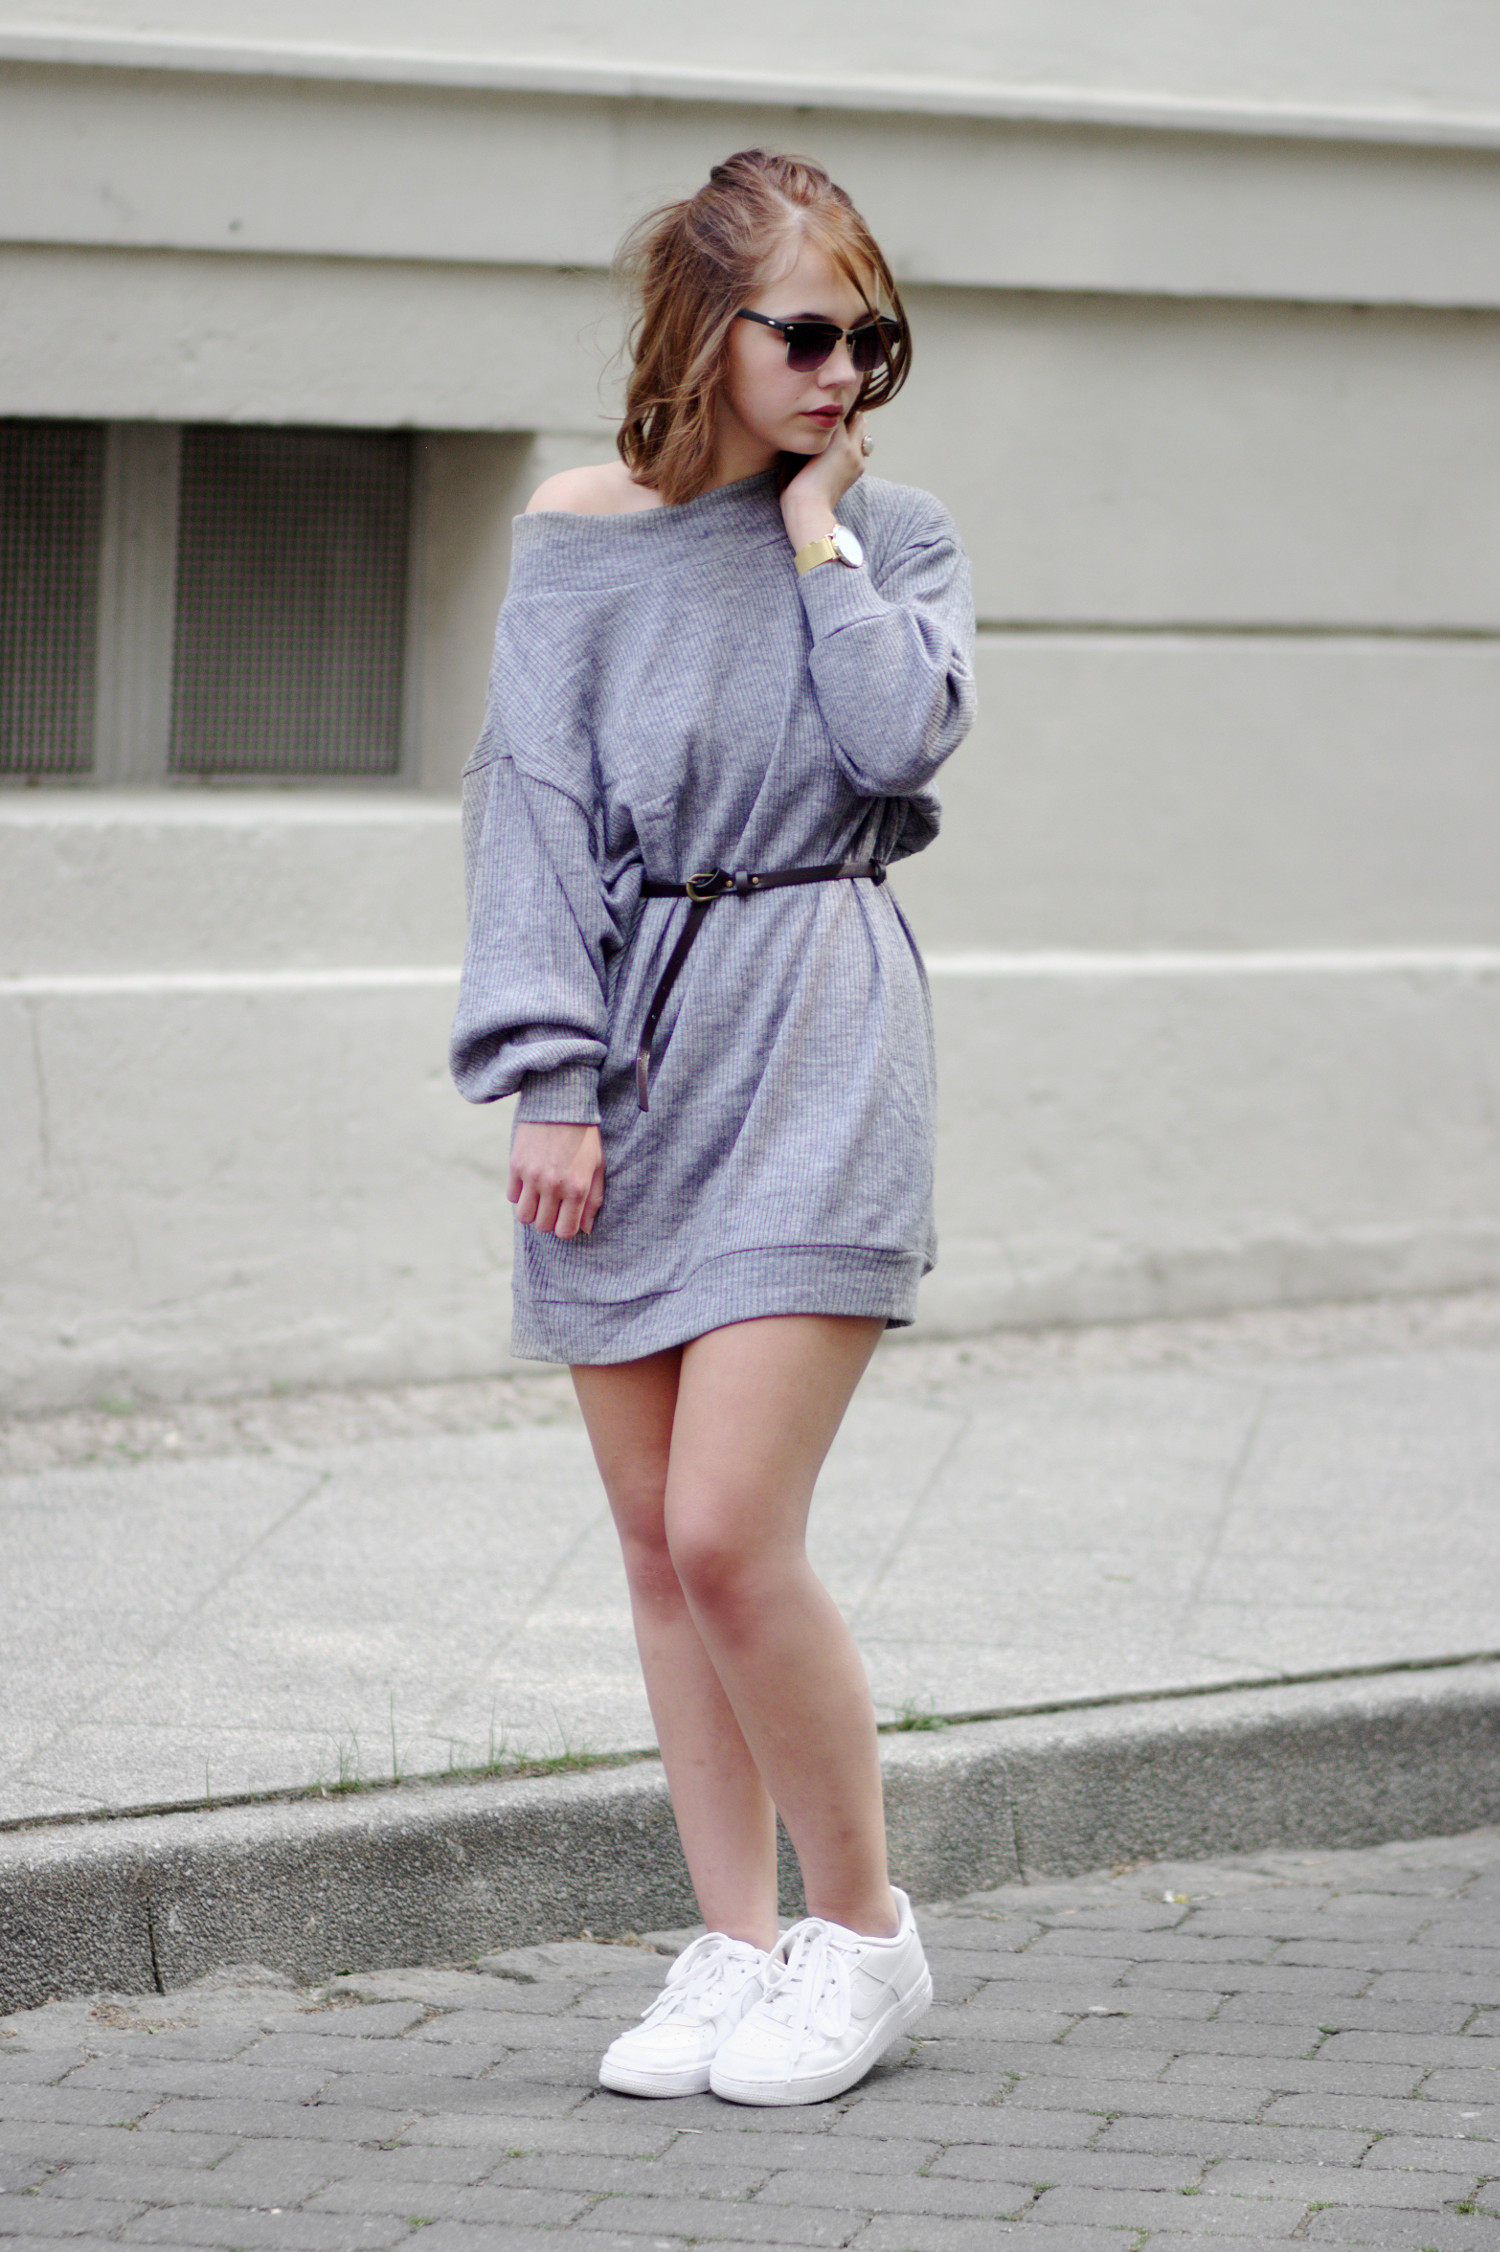 Bezaubernde Nana, bezauberndenana.de, Fashionblog, Outfit, Streetstyle, oversize Pullover als Kleid, grauer oversize Pullover von Lookbook Store, Nike Air Force 1 Sneaker, Rosefield Watch, lässiges Outfit,